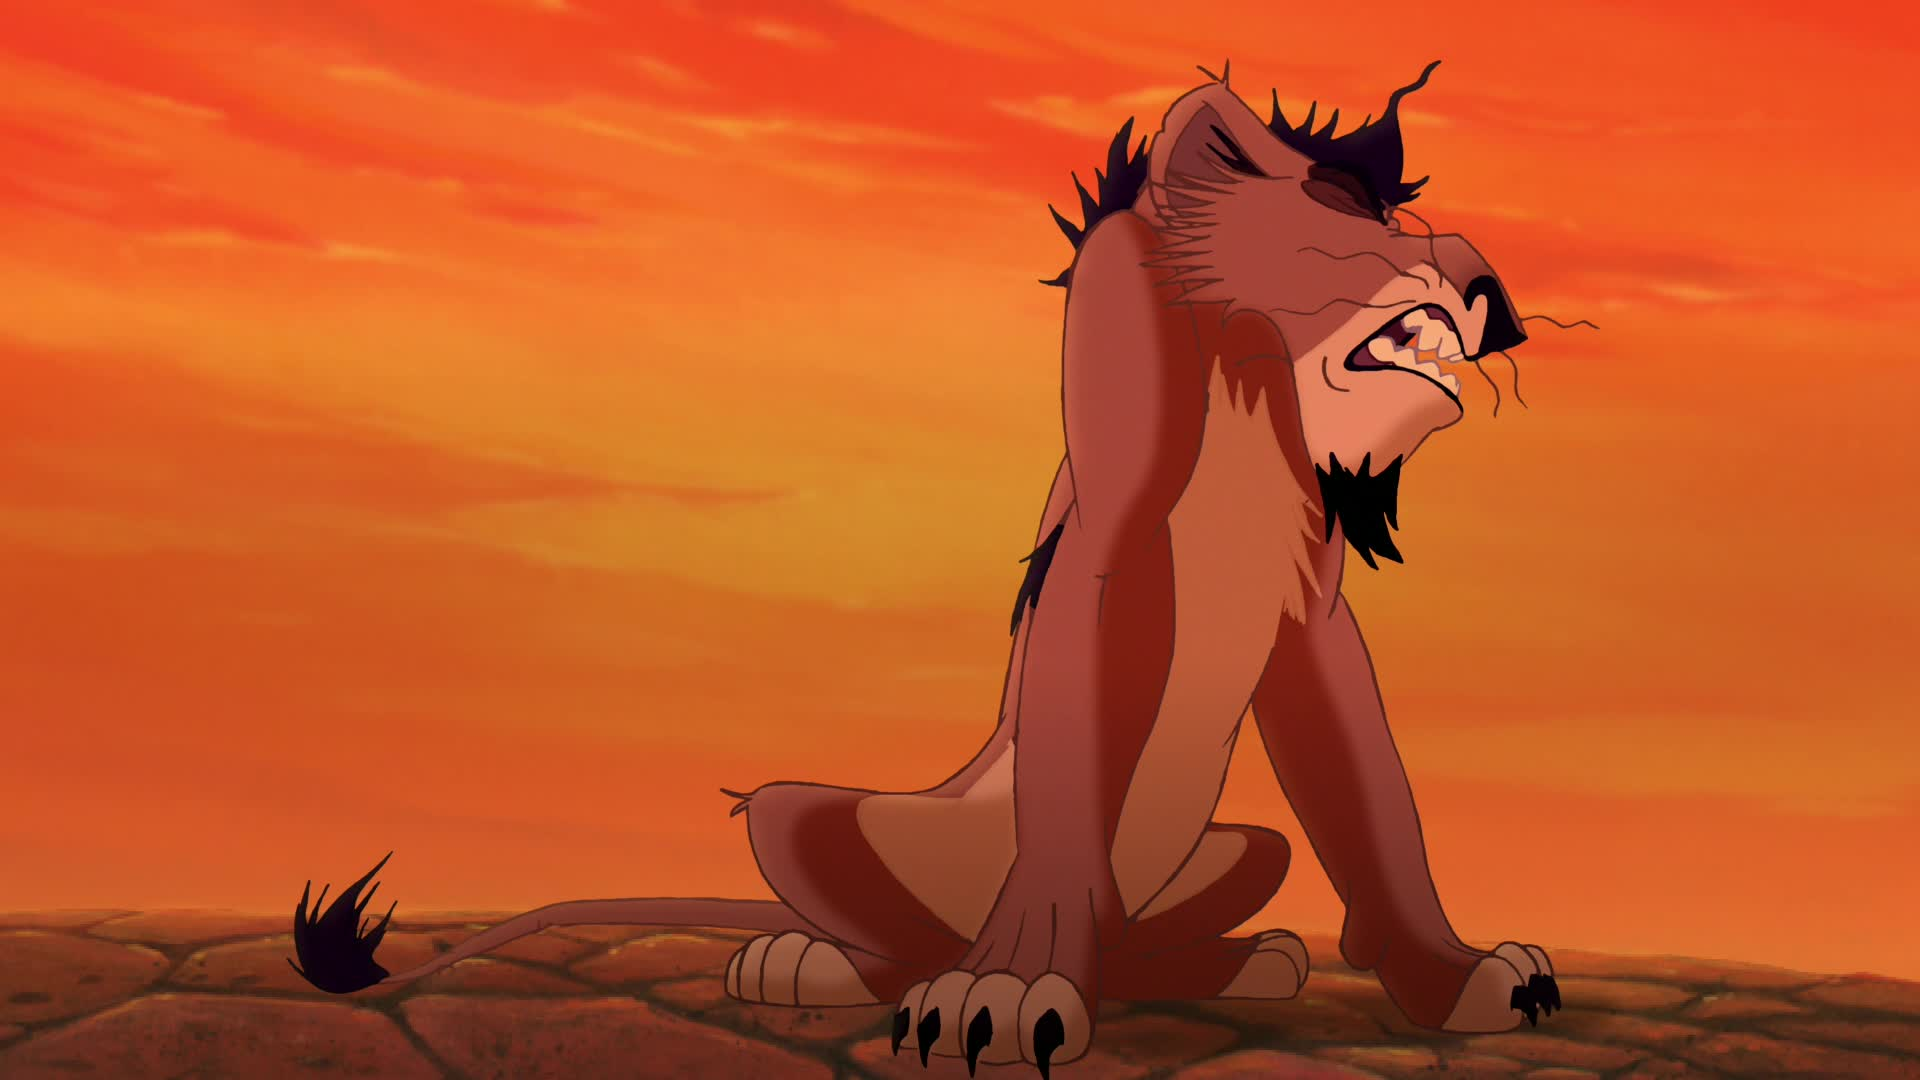 the cub at the end of the lion king